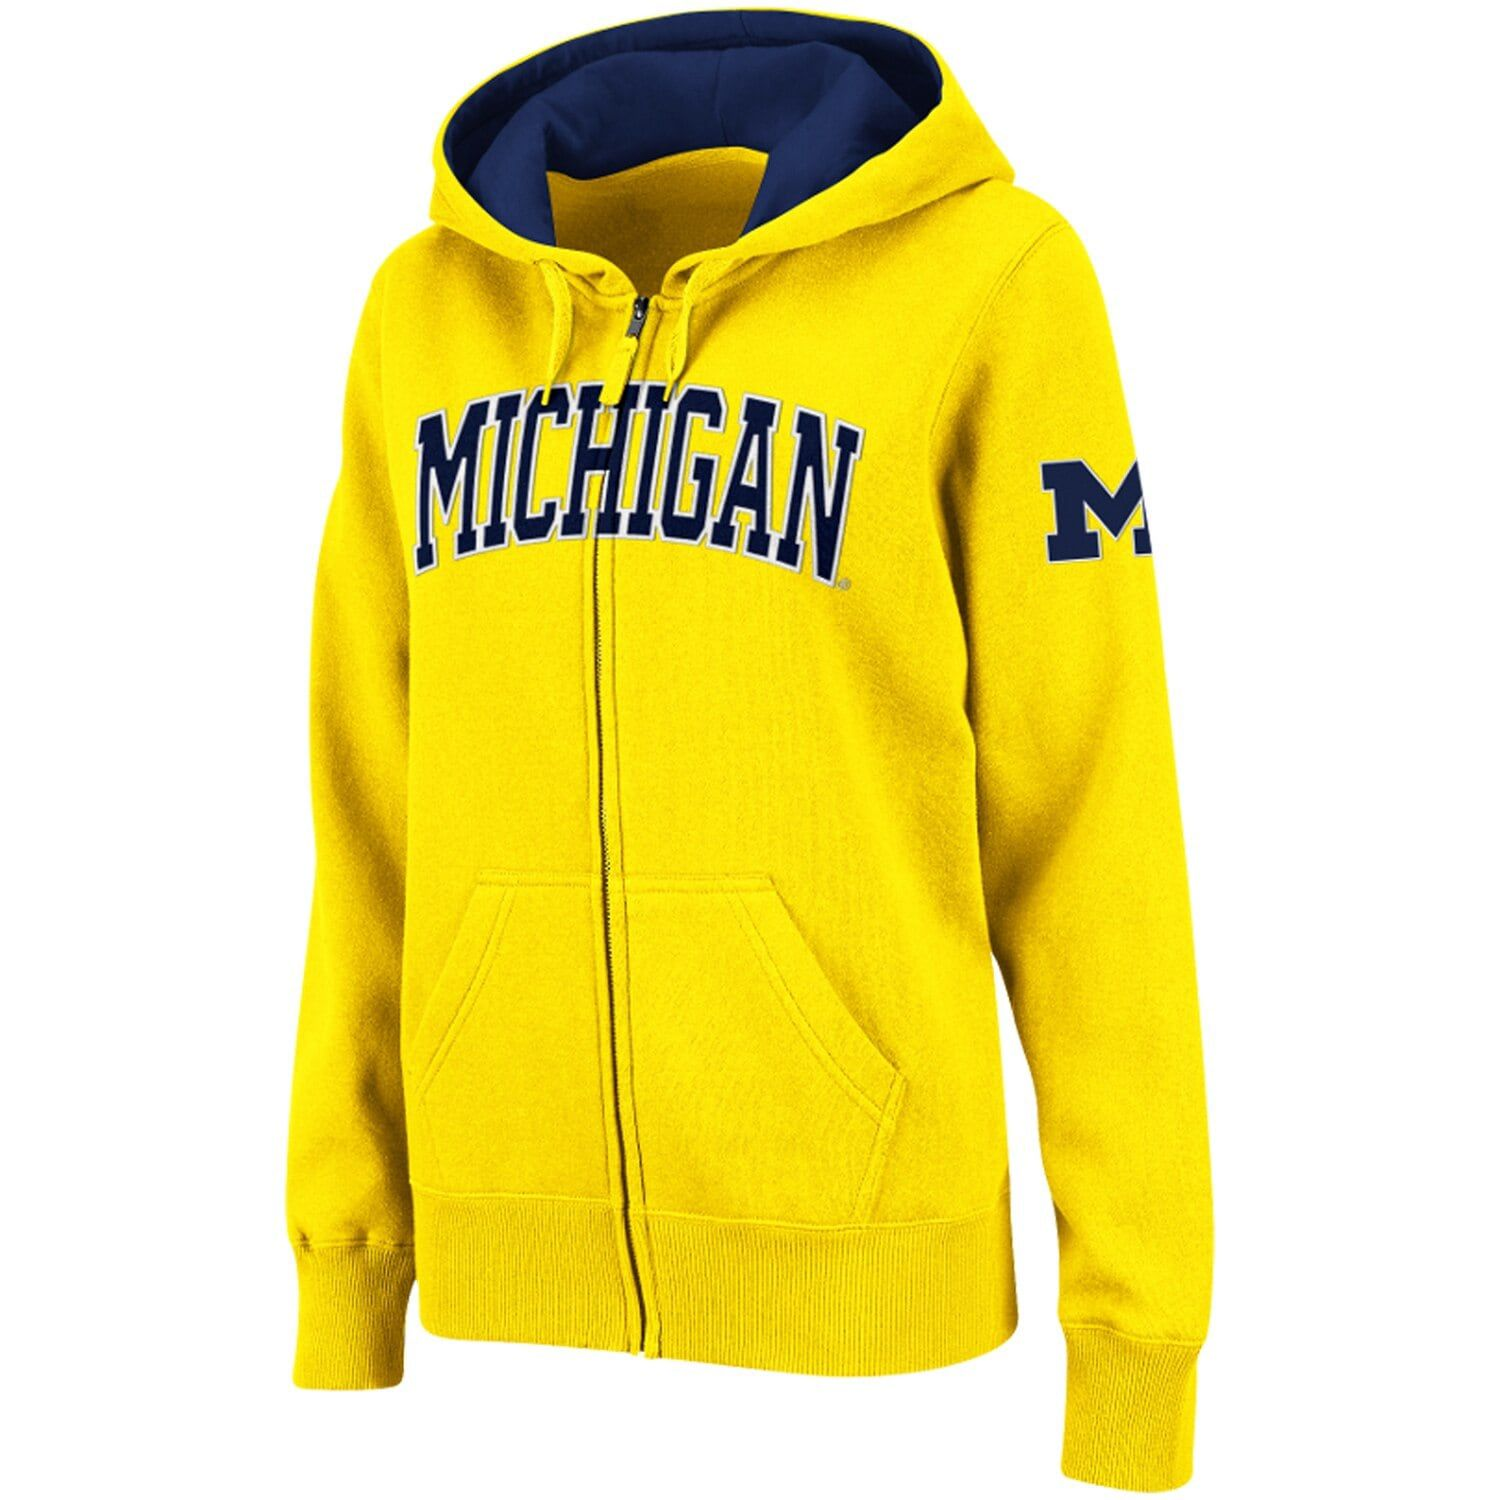 Women S Stadium Athletic Gold Michigan Wolverines Arched Name Full Zip Hoodie Affiliate Gold Affiliate Michigan Athl Zip Hoodie Full Zip Hoodie Hoodies